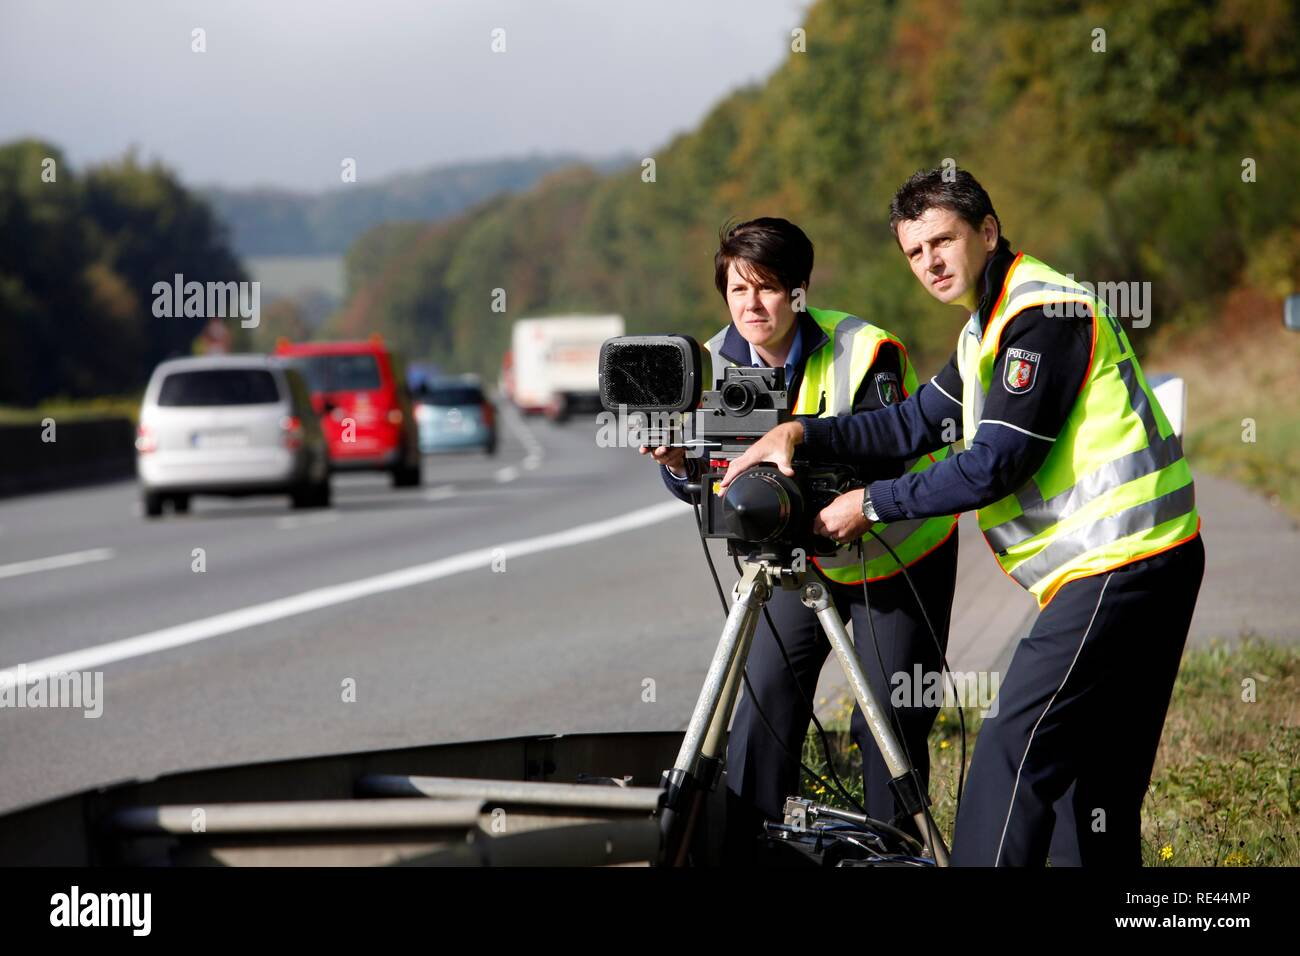 Police officers of the highway patrol errecting a radar measuring decice on the A2 highway for speed monitoring - Stock Image